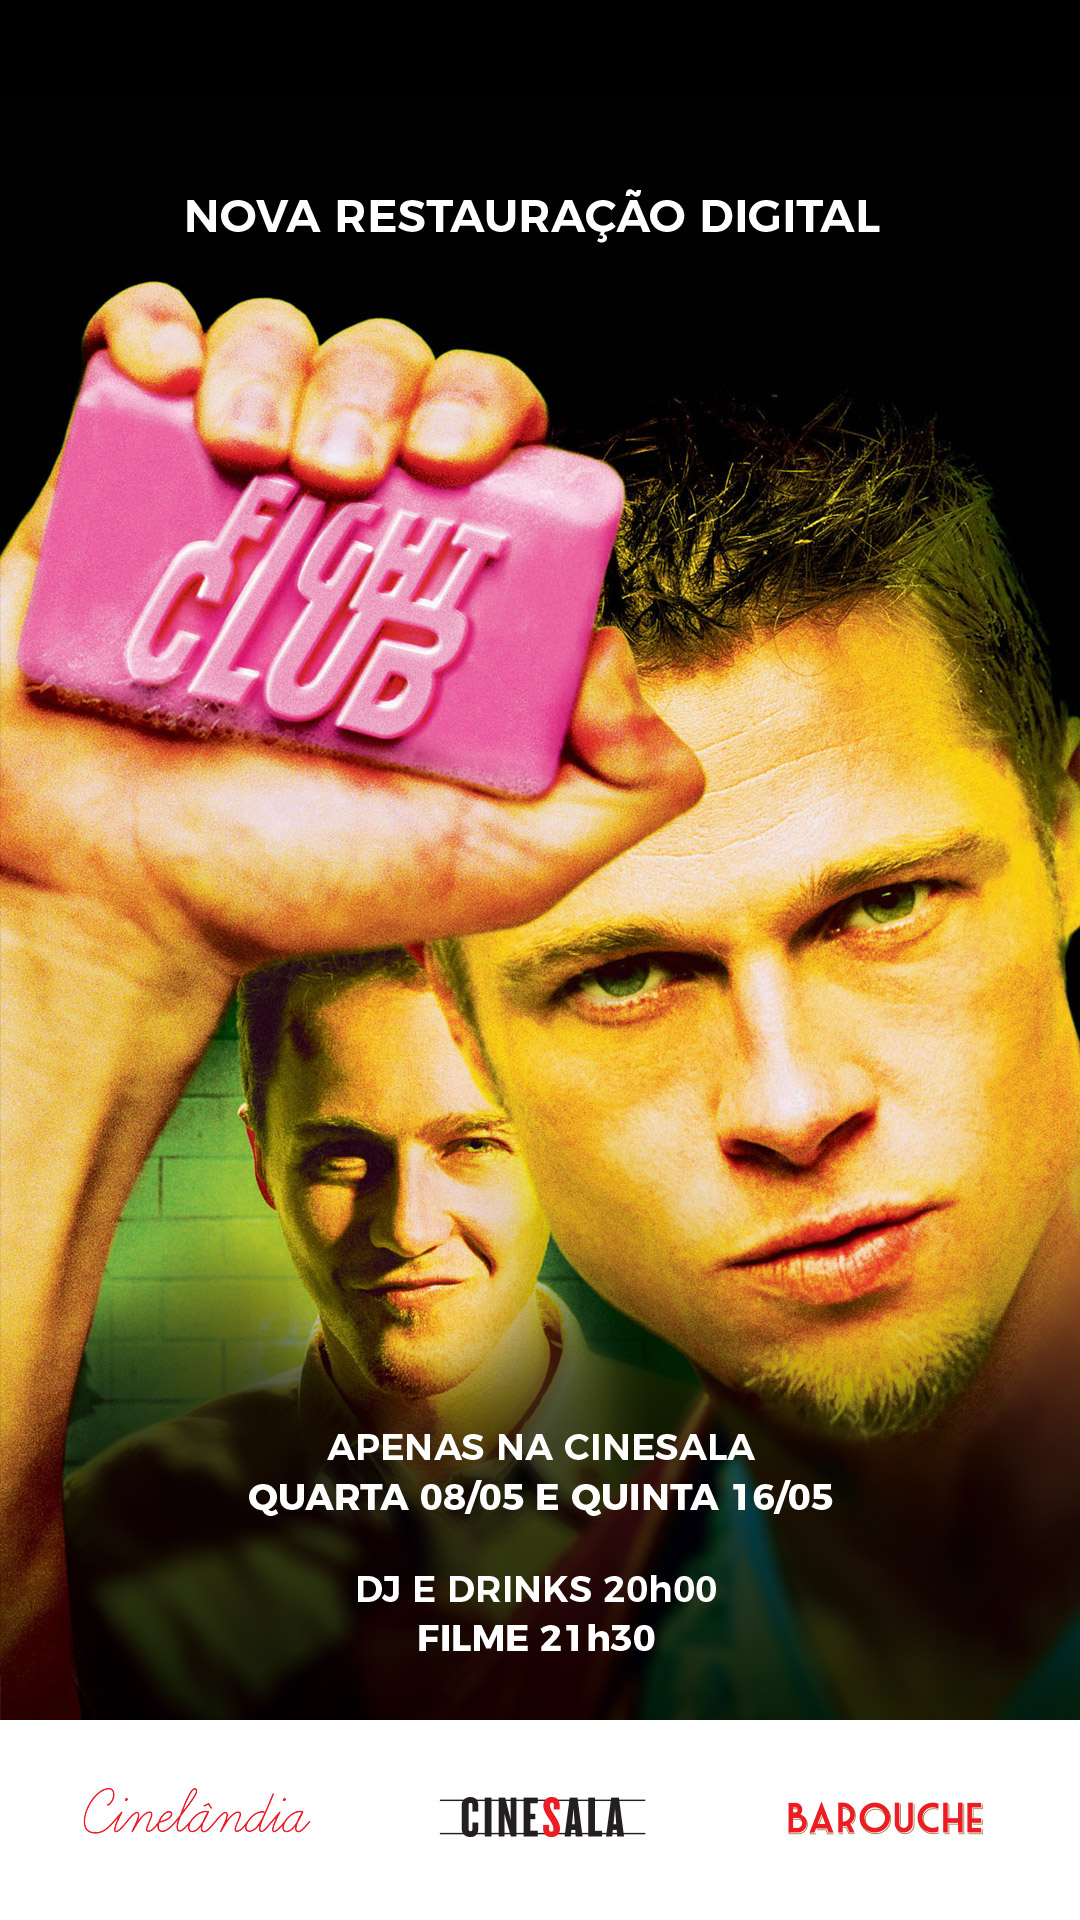 fight-club-stories.jpg